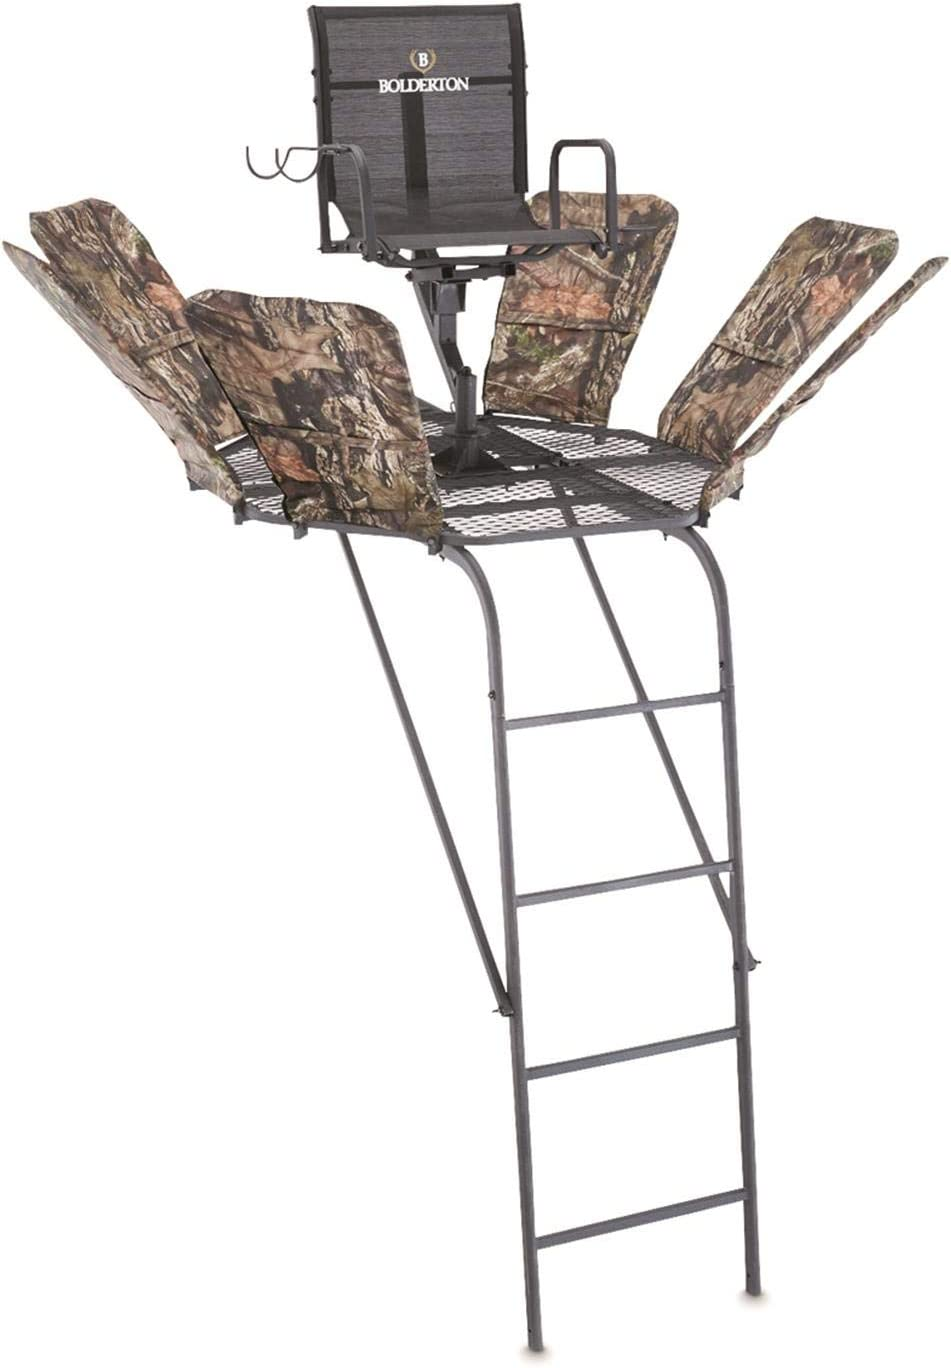 Bolderton 360 19' Ladder Tree System Lad with Max Cheap mail order specialty store 69% OFF Safety Stand